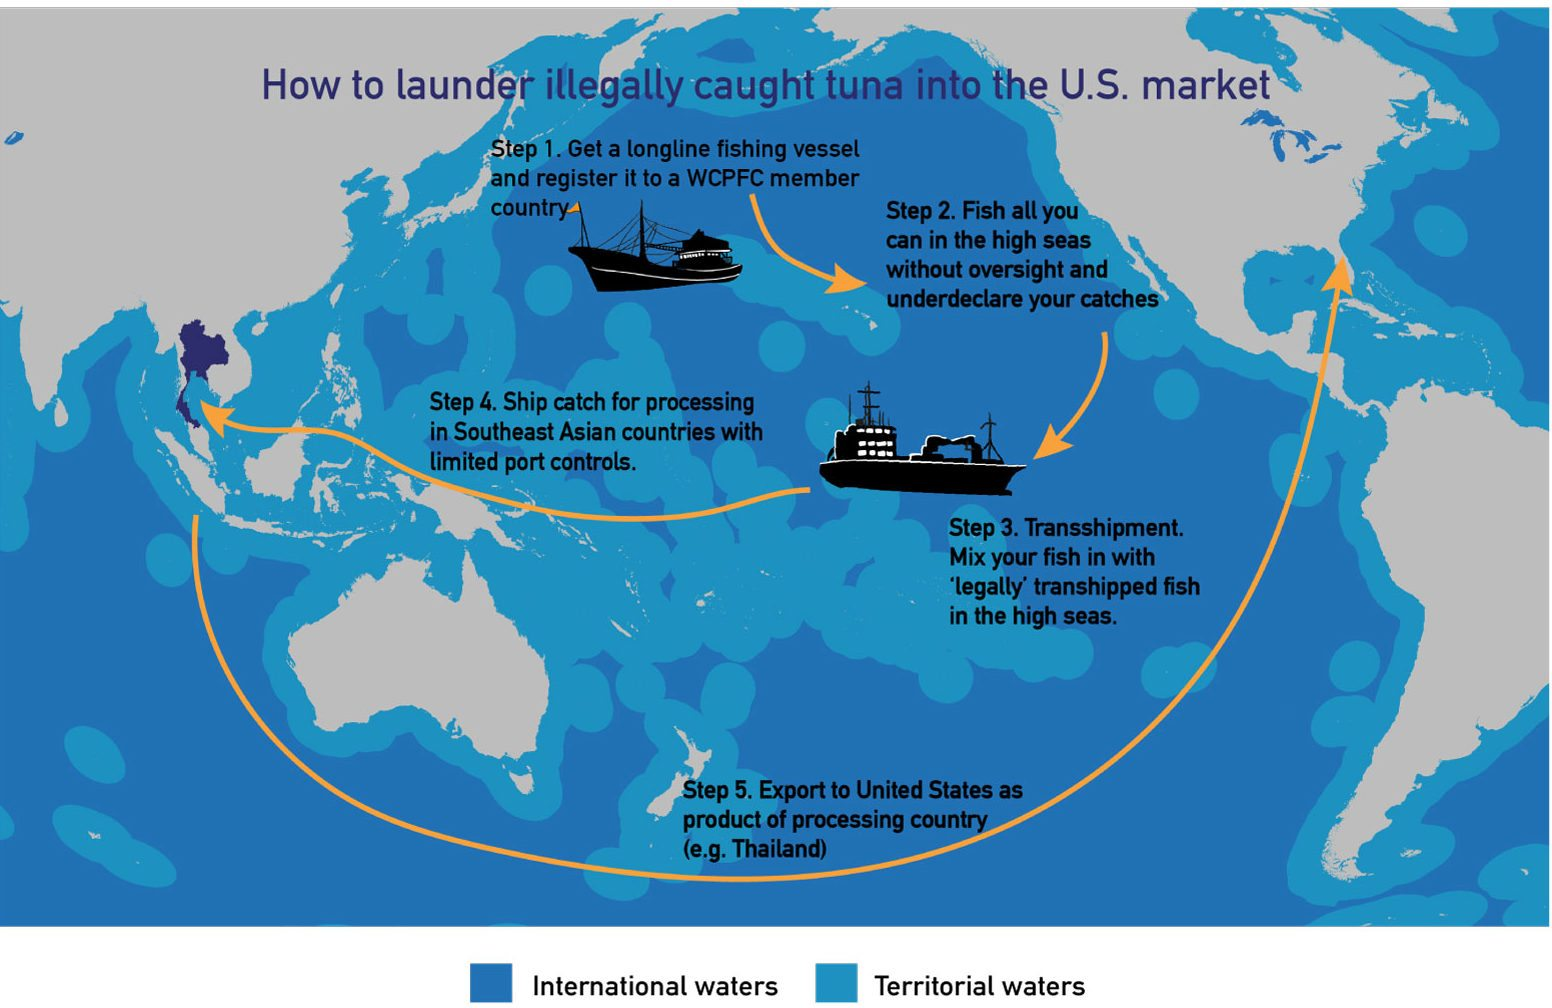 Transshipment on the high seas (international waters) is one way illegally caught tuna can be laundered into the market.